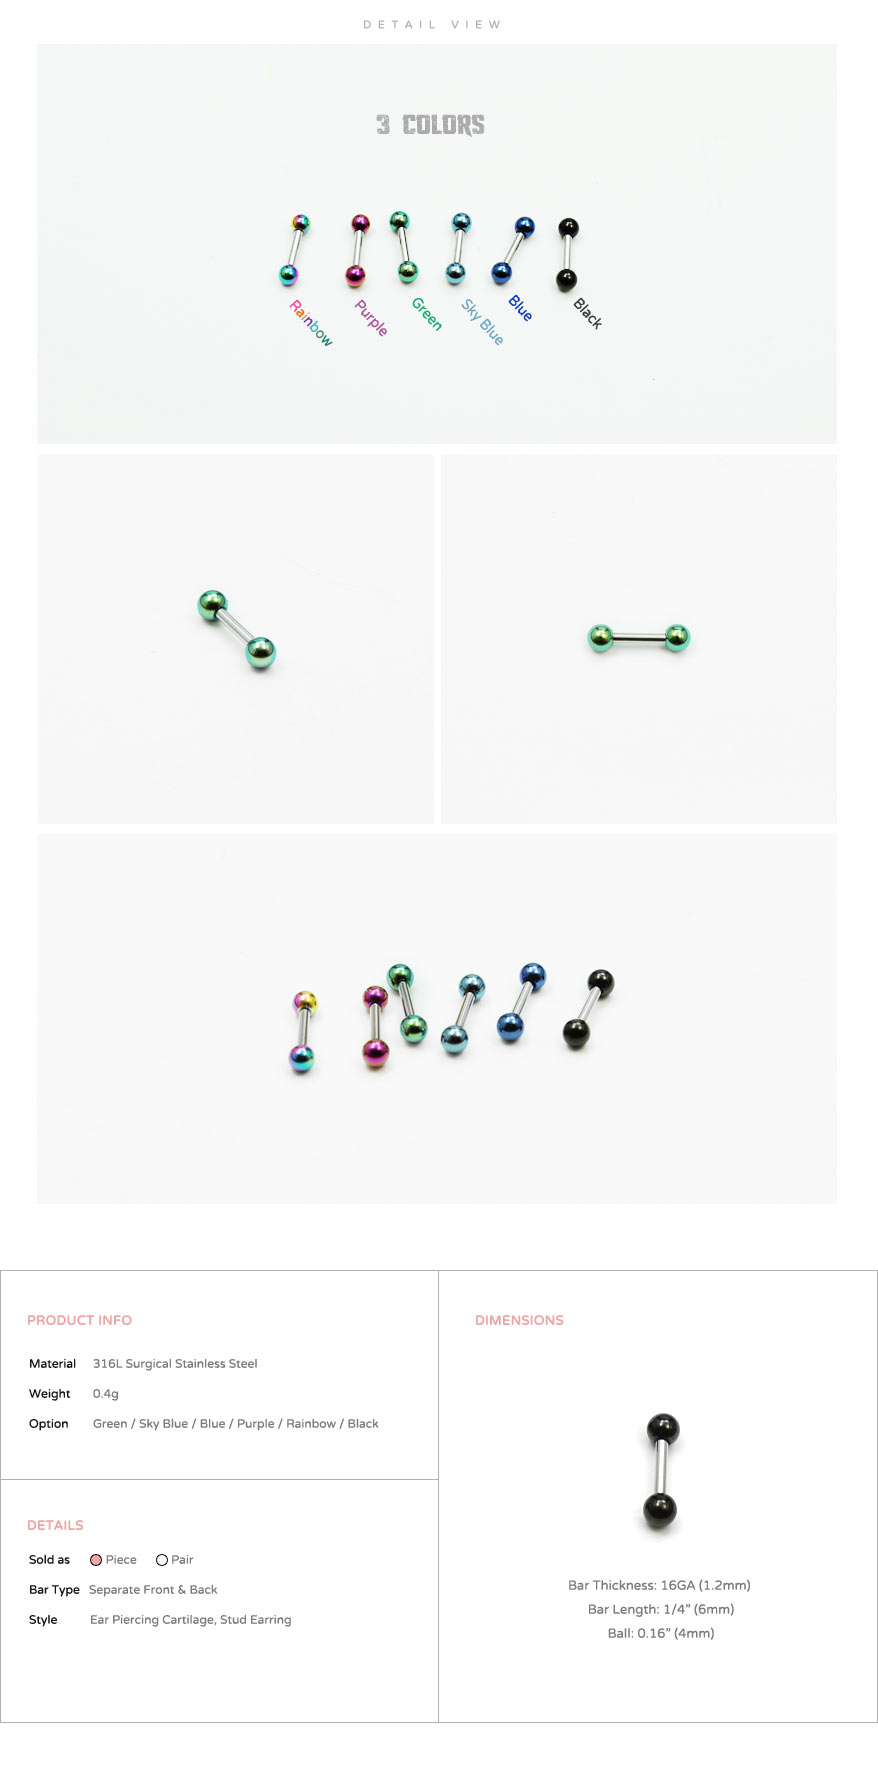 ear_studs_piercing_Cartilage_earrings_16g_316l_Surgical_Stainless_Steel_korean_asian_style_jewelry_barbell_titanium_3mm_5